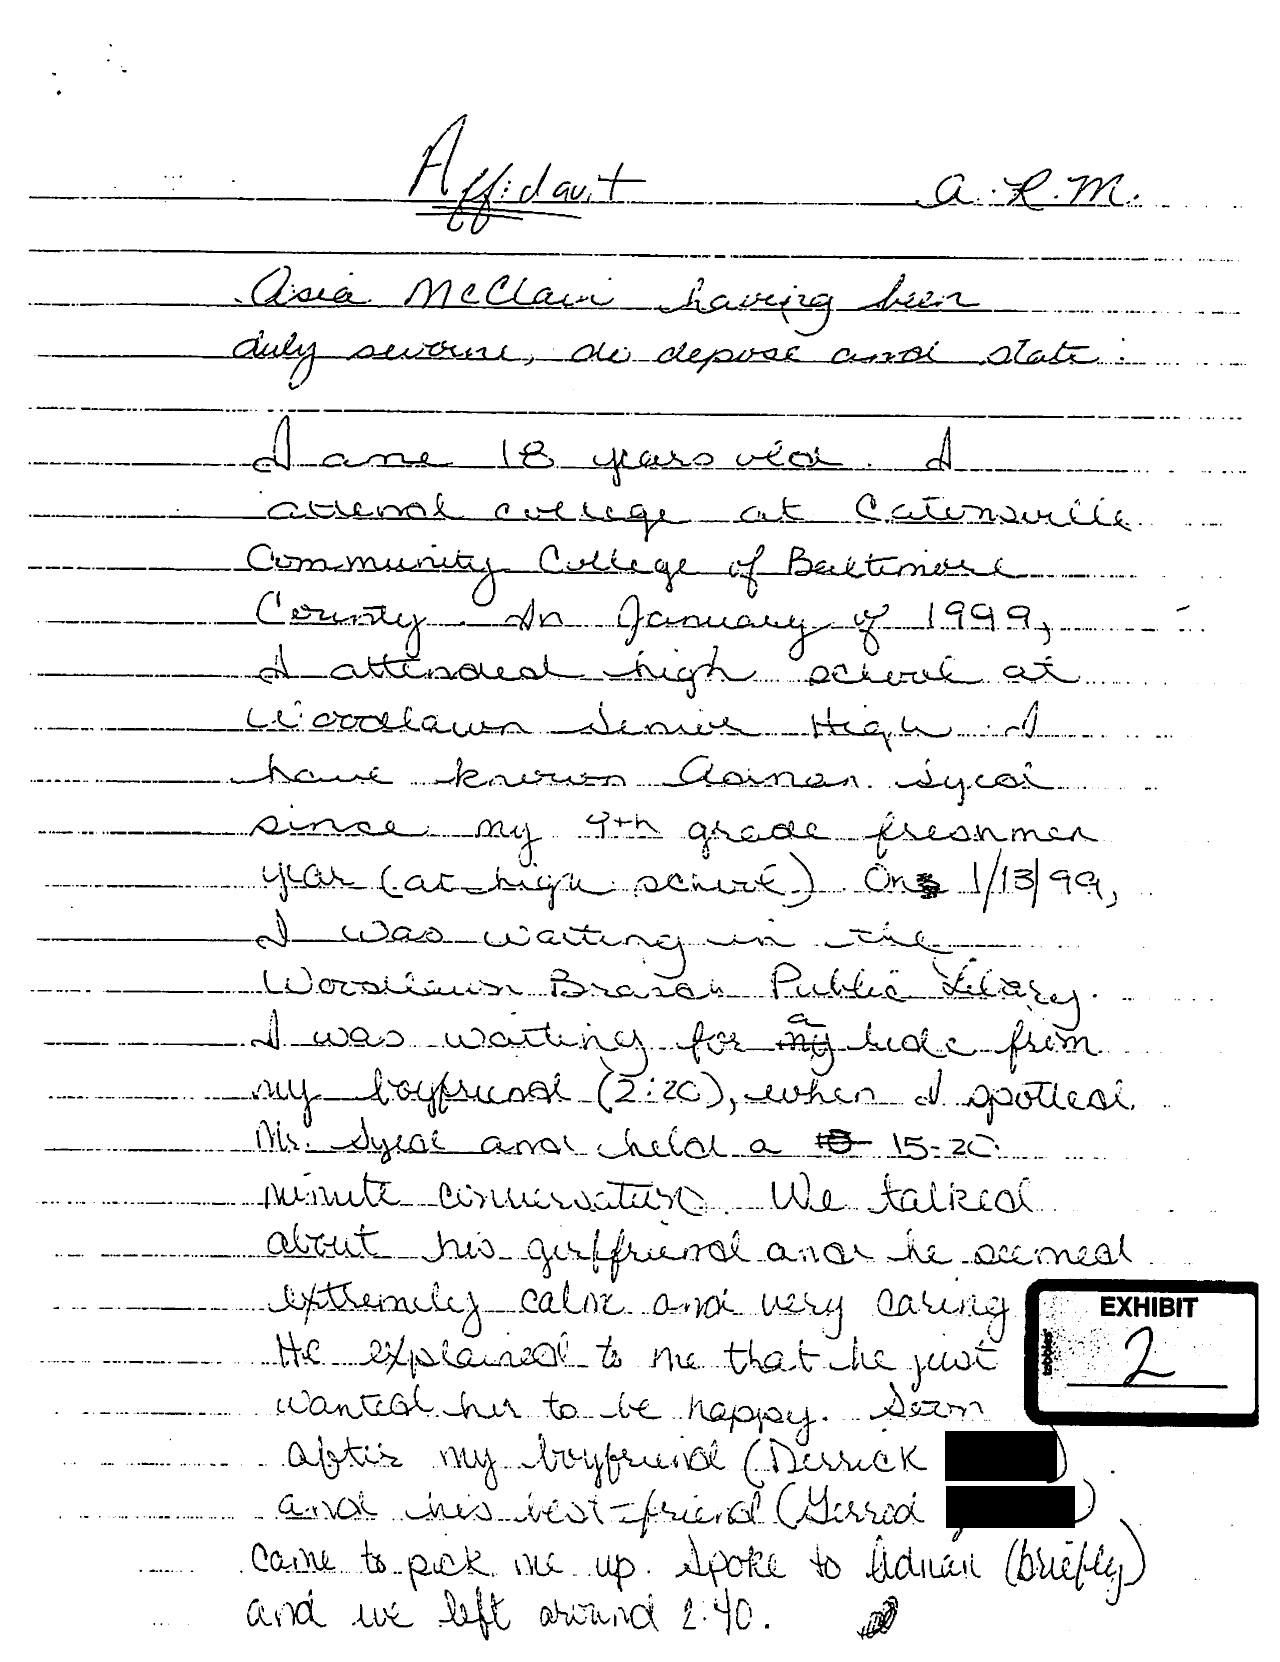 Serial podcast images asia mclains affidavit march 25 2000 page serial podcast images asia mclains affidavit march 25 2000 page 1 hd wallpaper and background photos altavistaventures Images